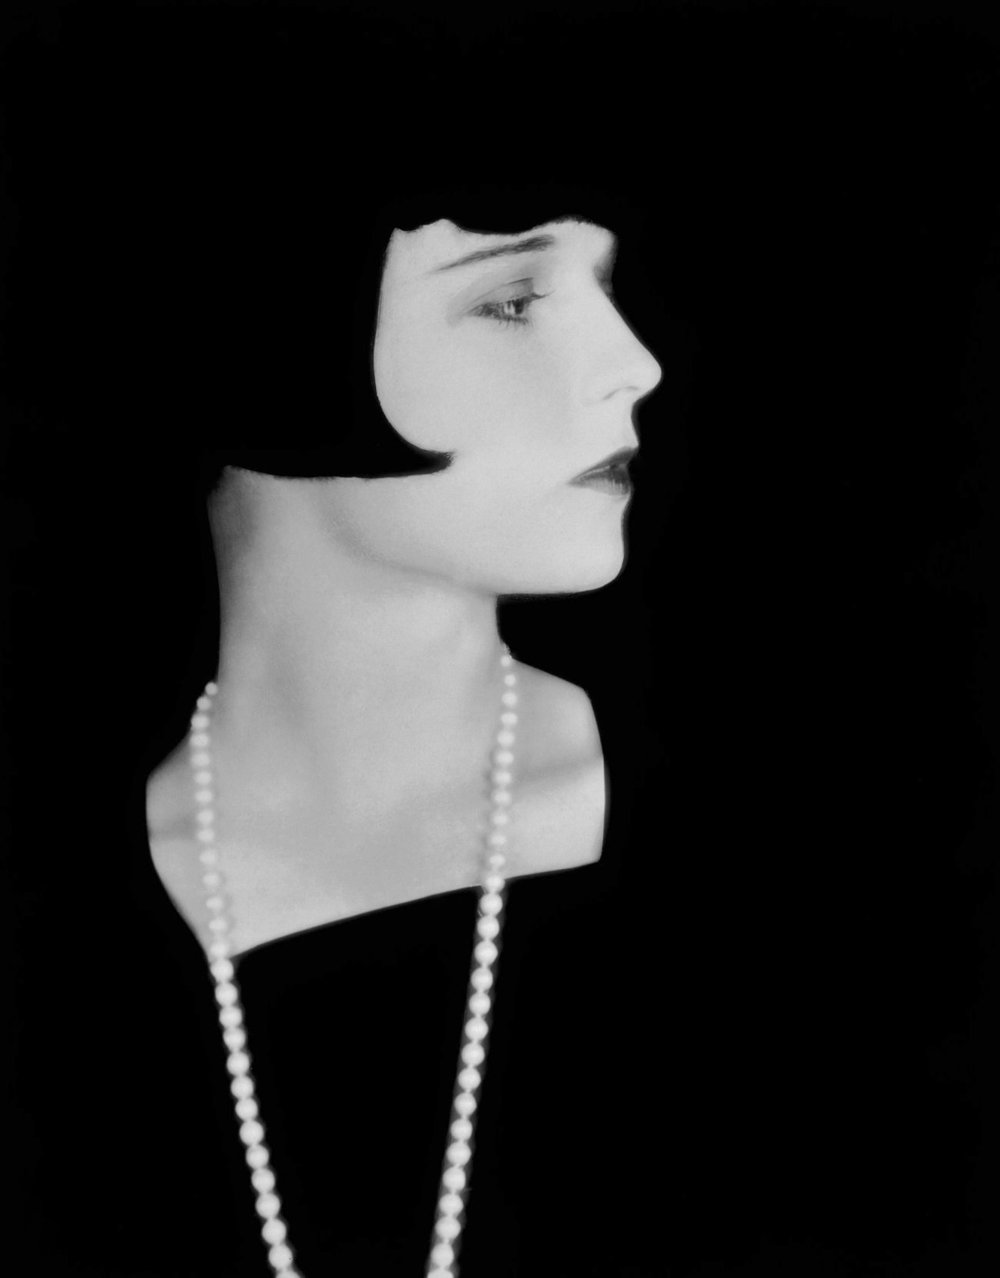 1929: American actress Louise Brooks (1906 - 1985) wearing a long necklace which stands out starkly against a black background. (Photo by Eugene Robert Richee)